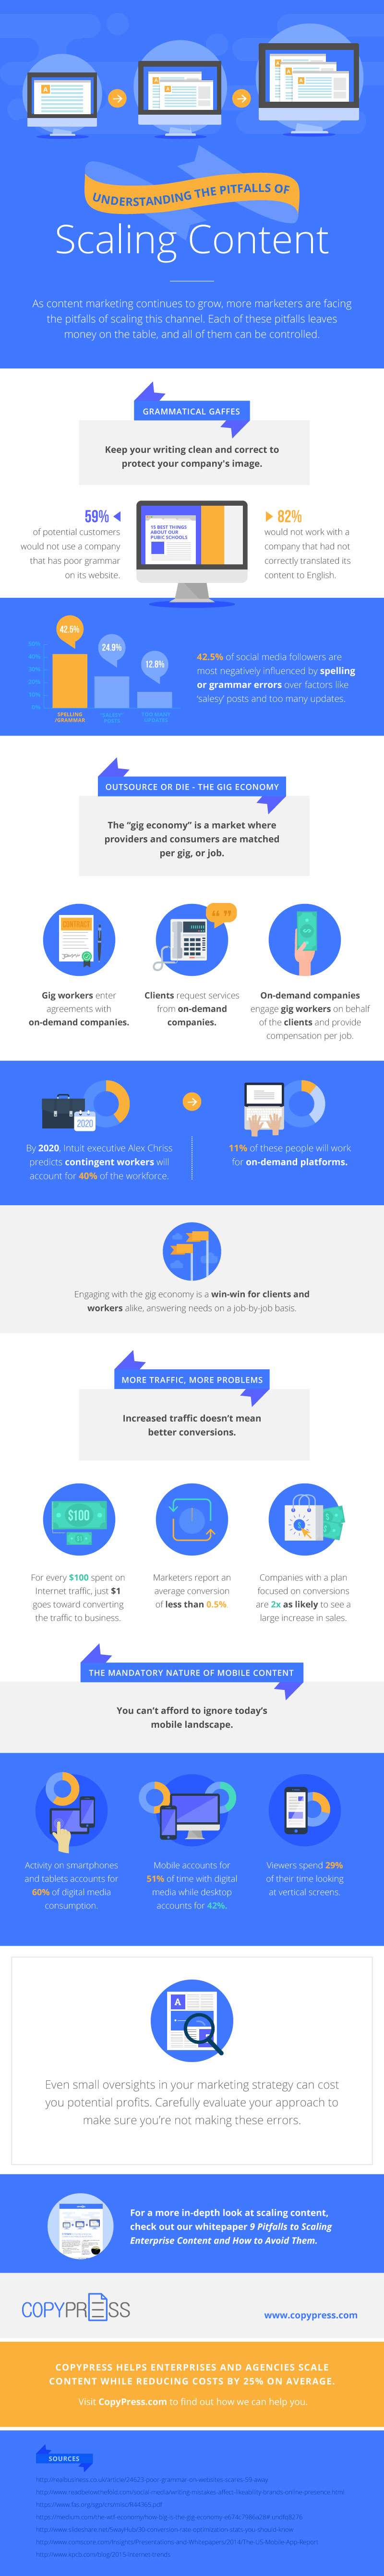 pitfalls-of-scaling-content-infographic